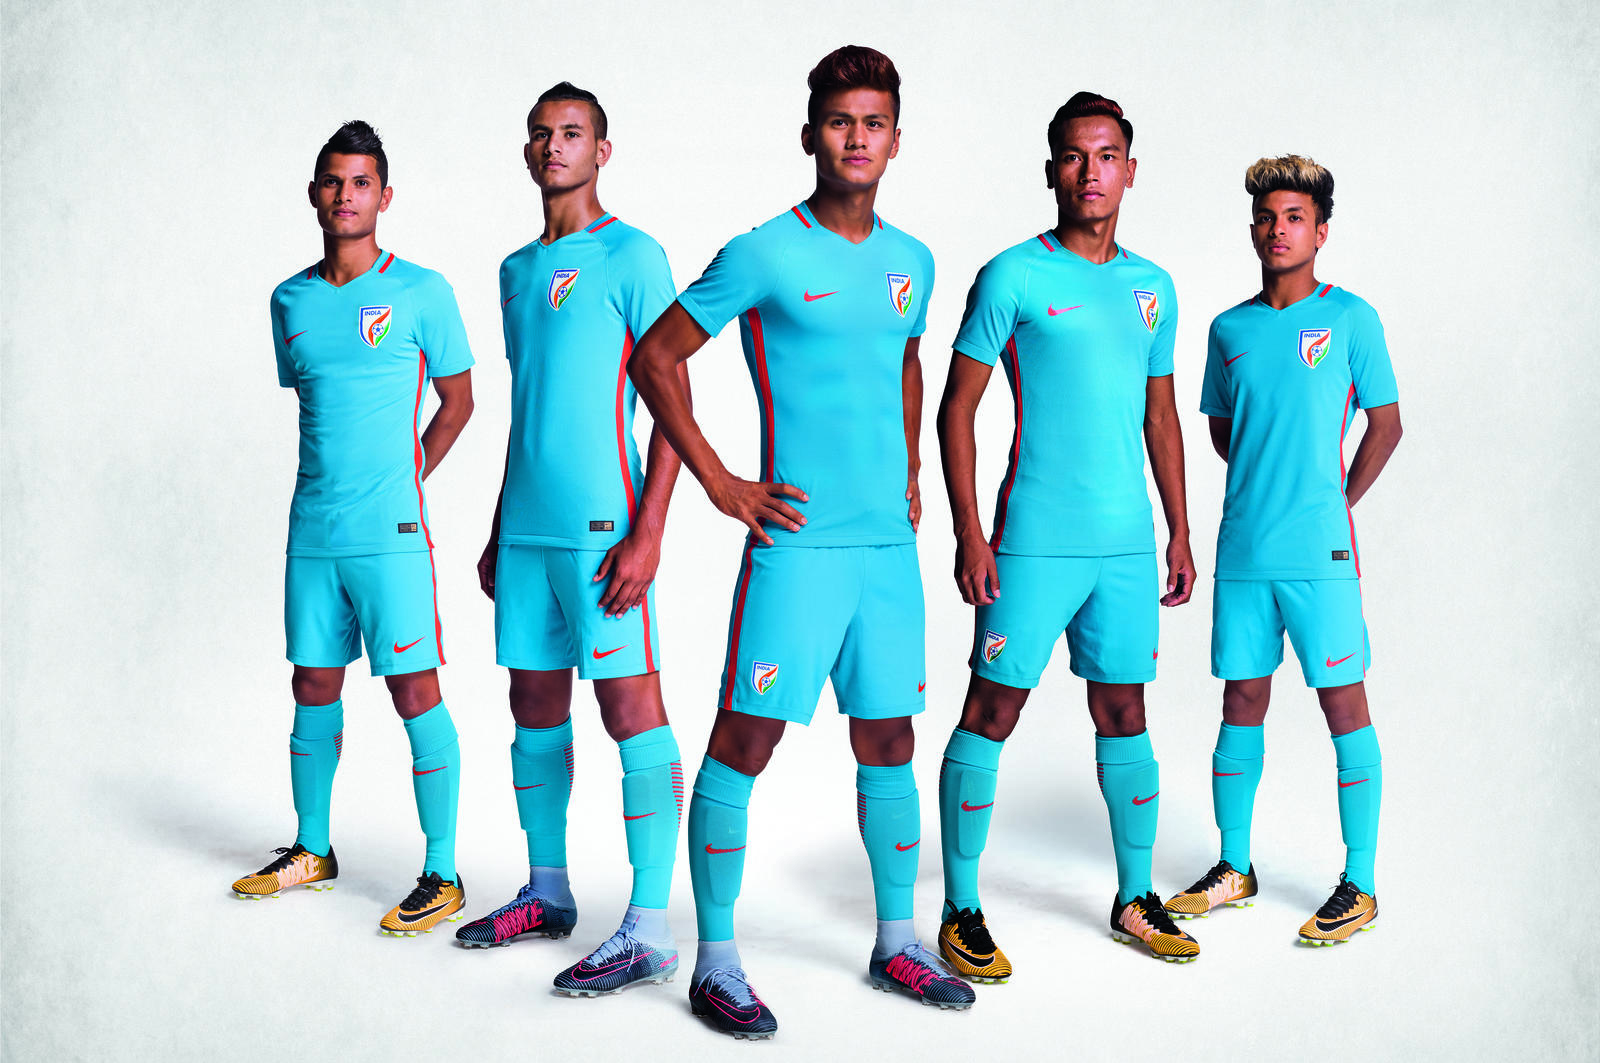 82c4b1c05c48 India s New Football Kit Sets Blue Tigers Up to Create History ...